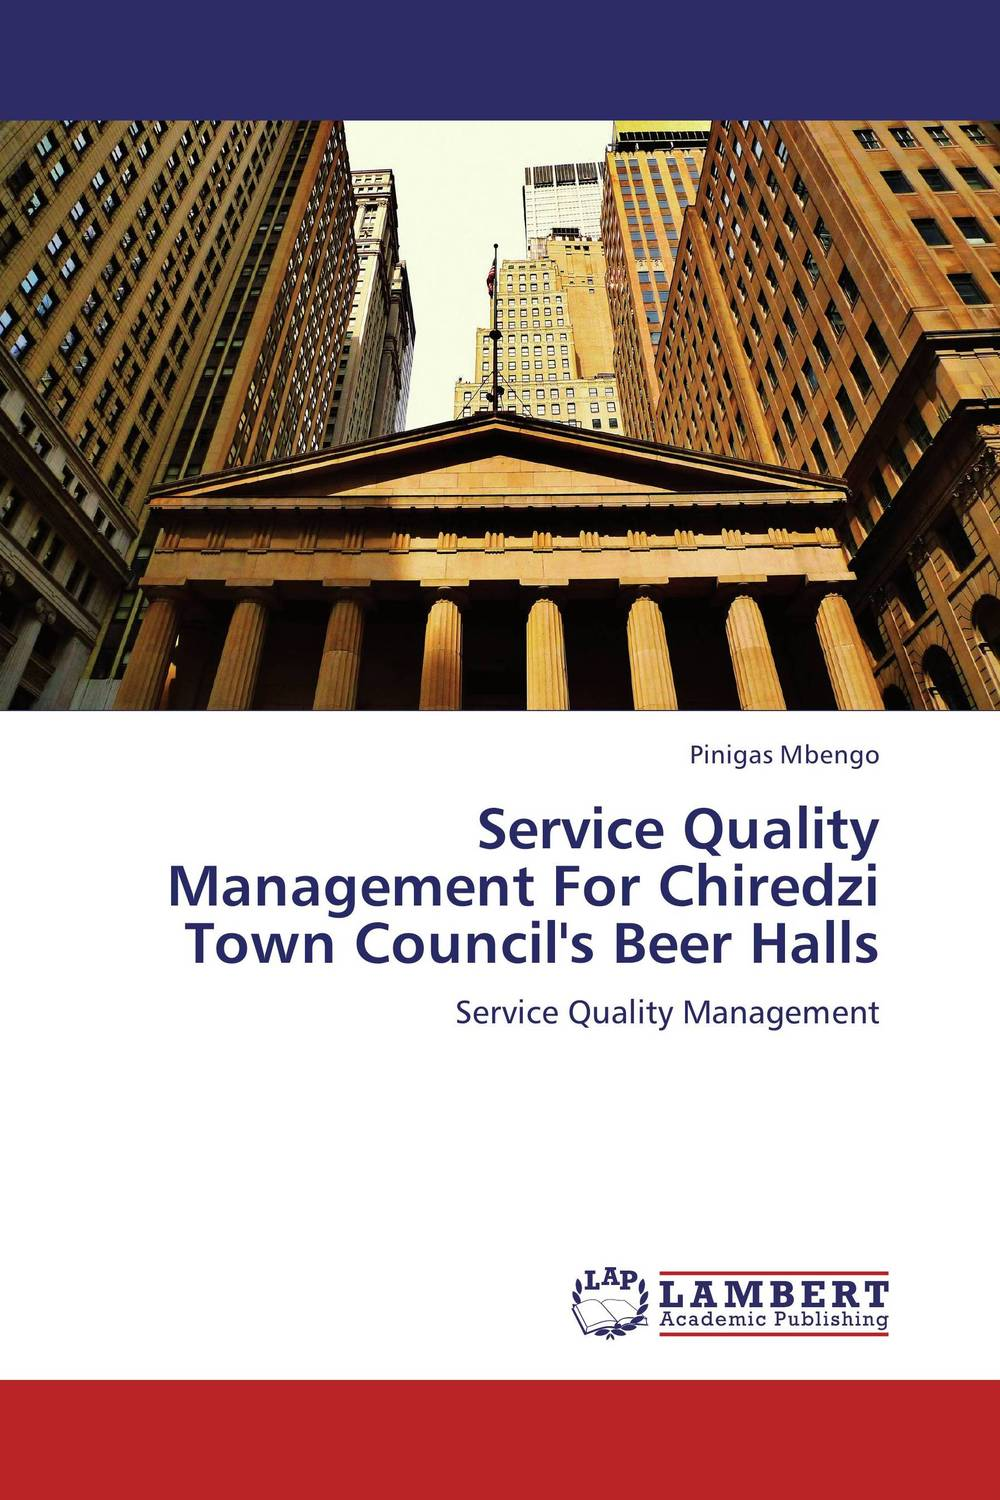 Service Quality Management For Chiredzi Town Council's Beer Halls robert moeller r executive s guide to it governance improving systems processes with service management cobit and itil